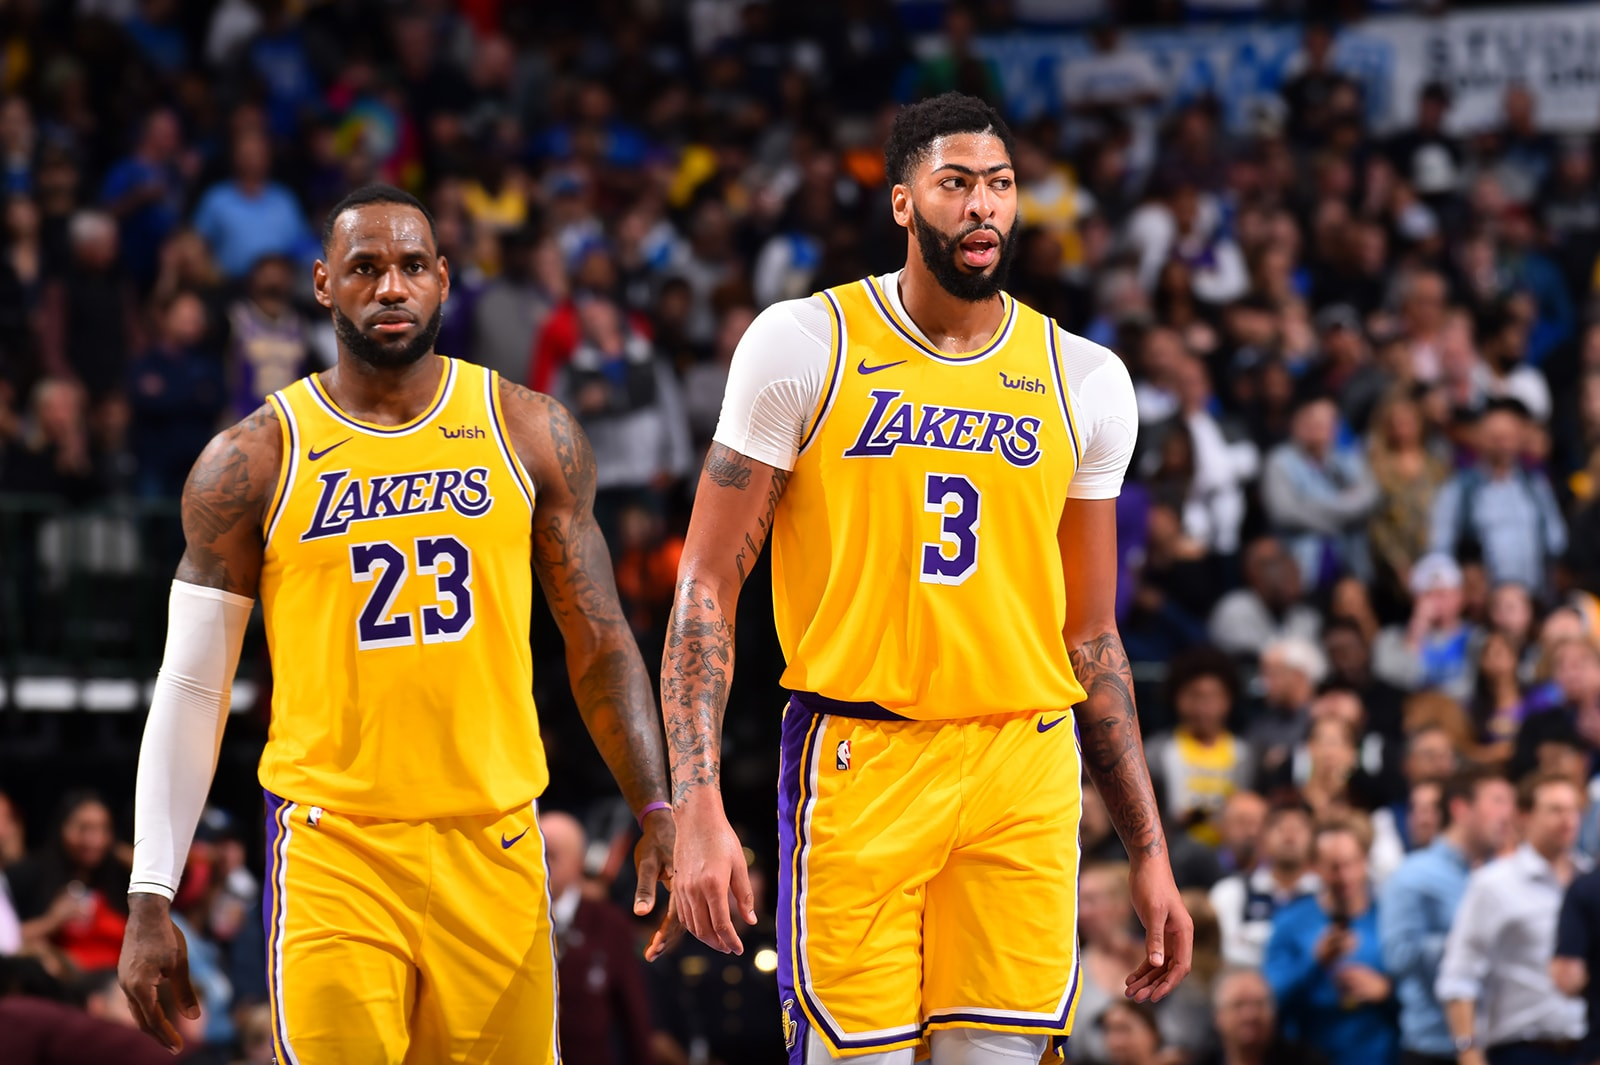 LeBron and AD playing for the Lakers